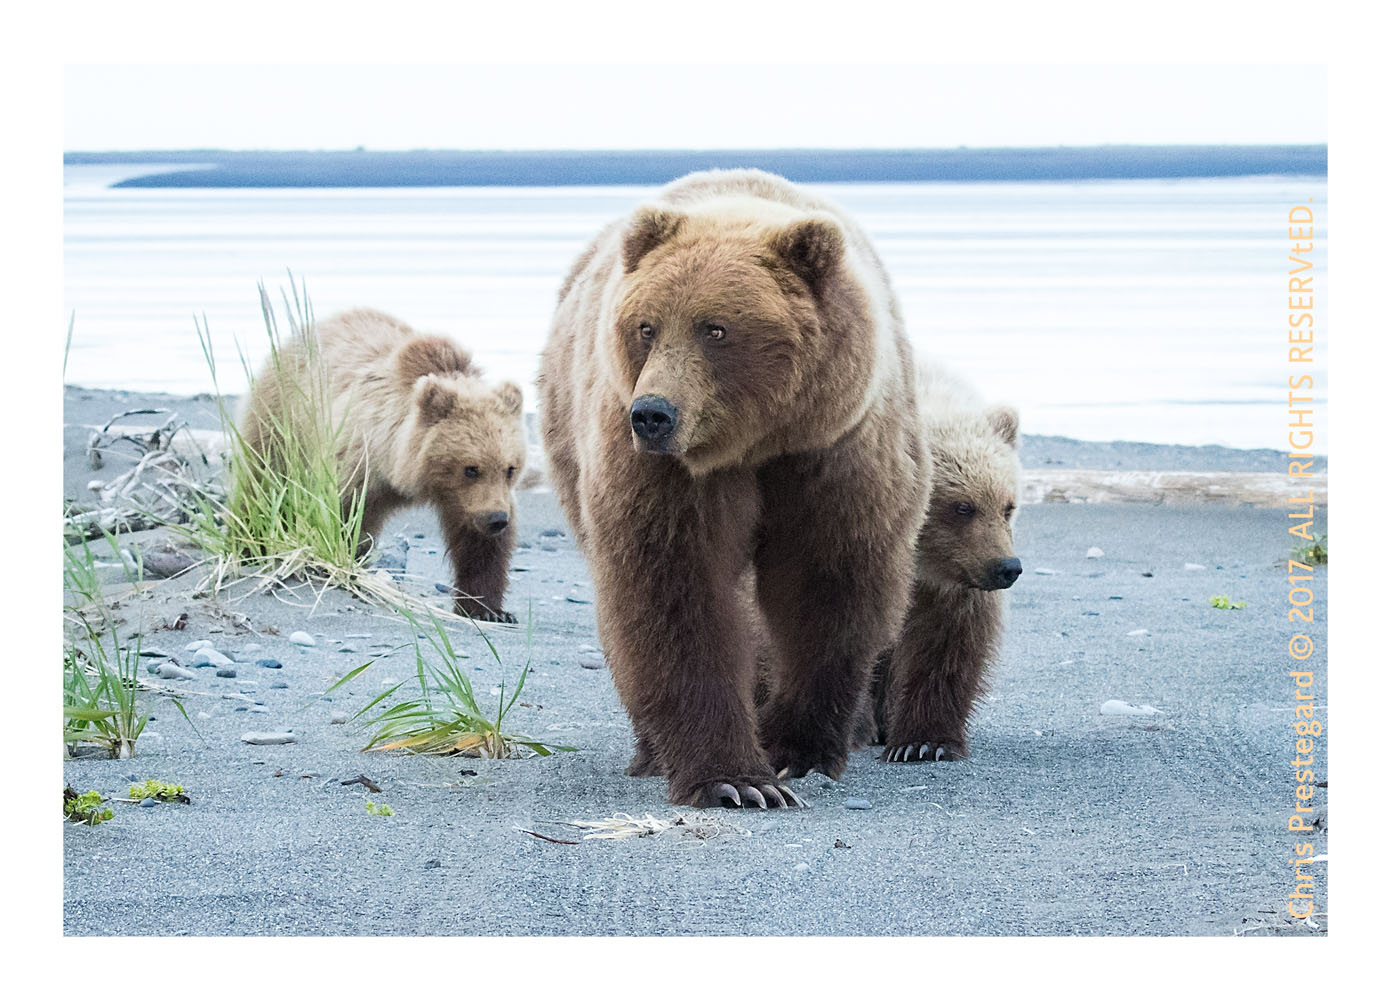 Coastal brown bears, Alaska June 2017